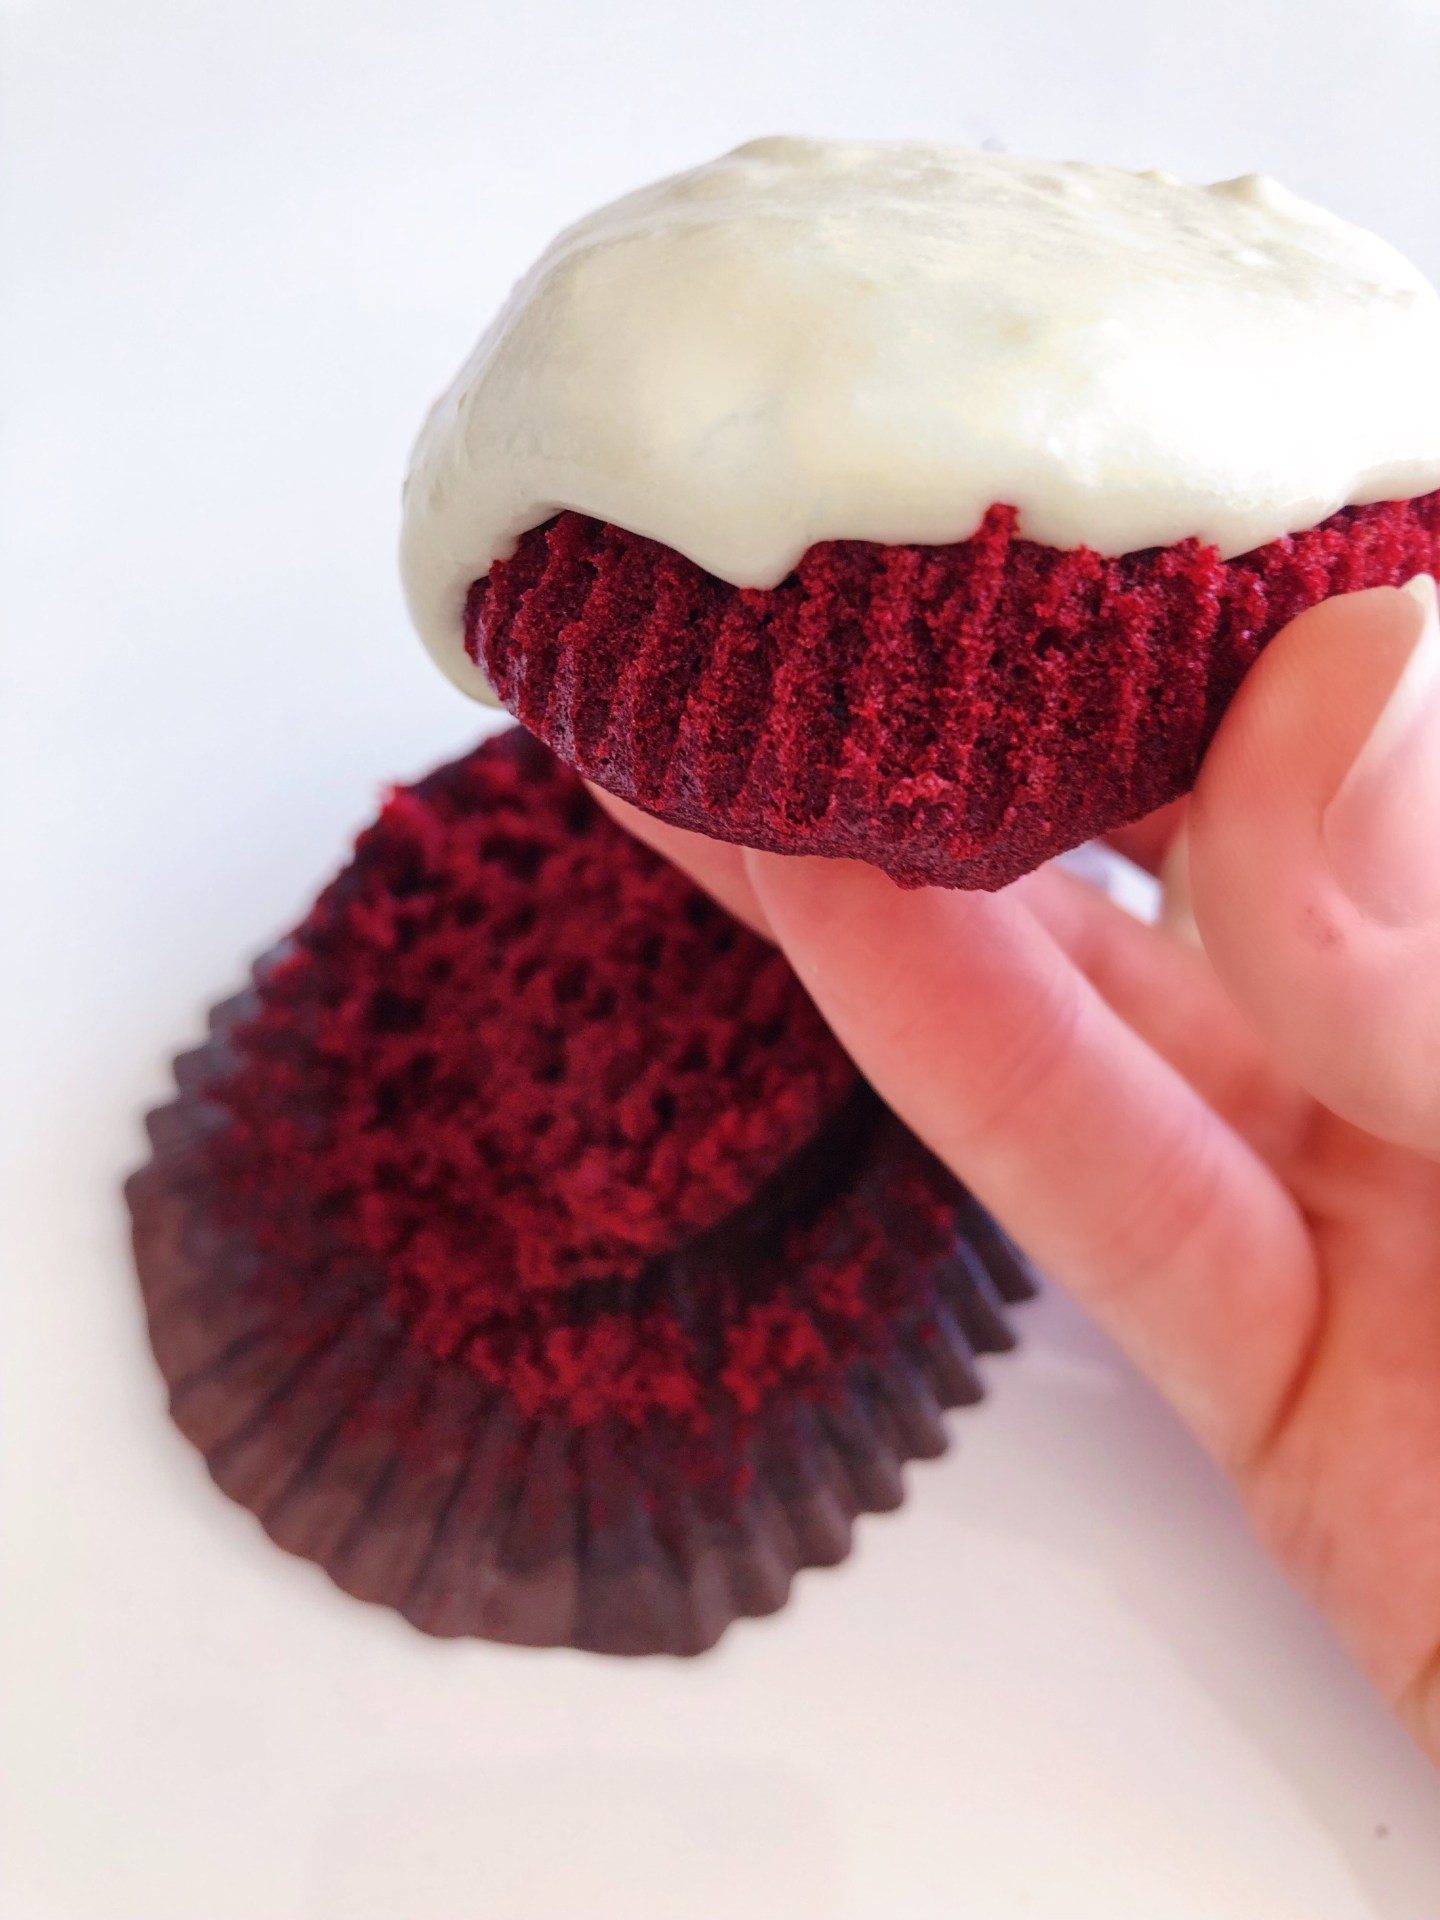 The Perfect Red Velvet Cupcakes